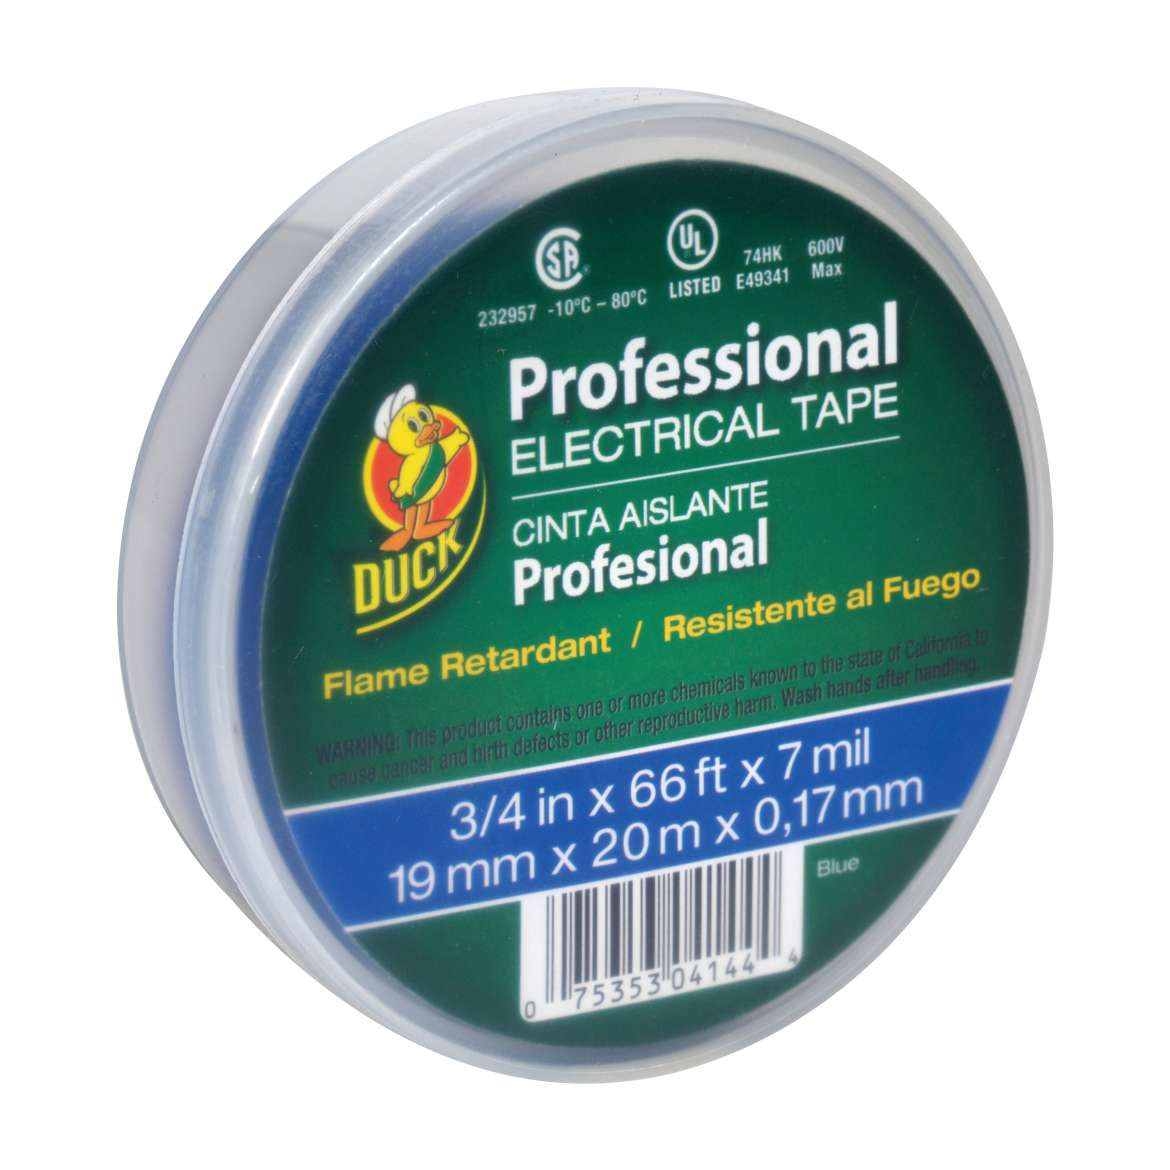 Duck® Brand Professional Electrical Tape Canister Pack - Blue, .75 in. x 66 ft. x 7 mil. Image